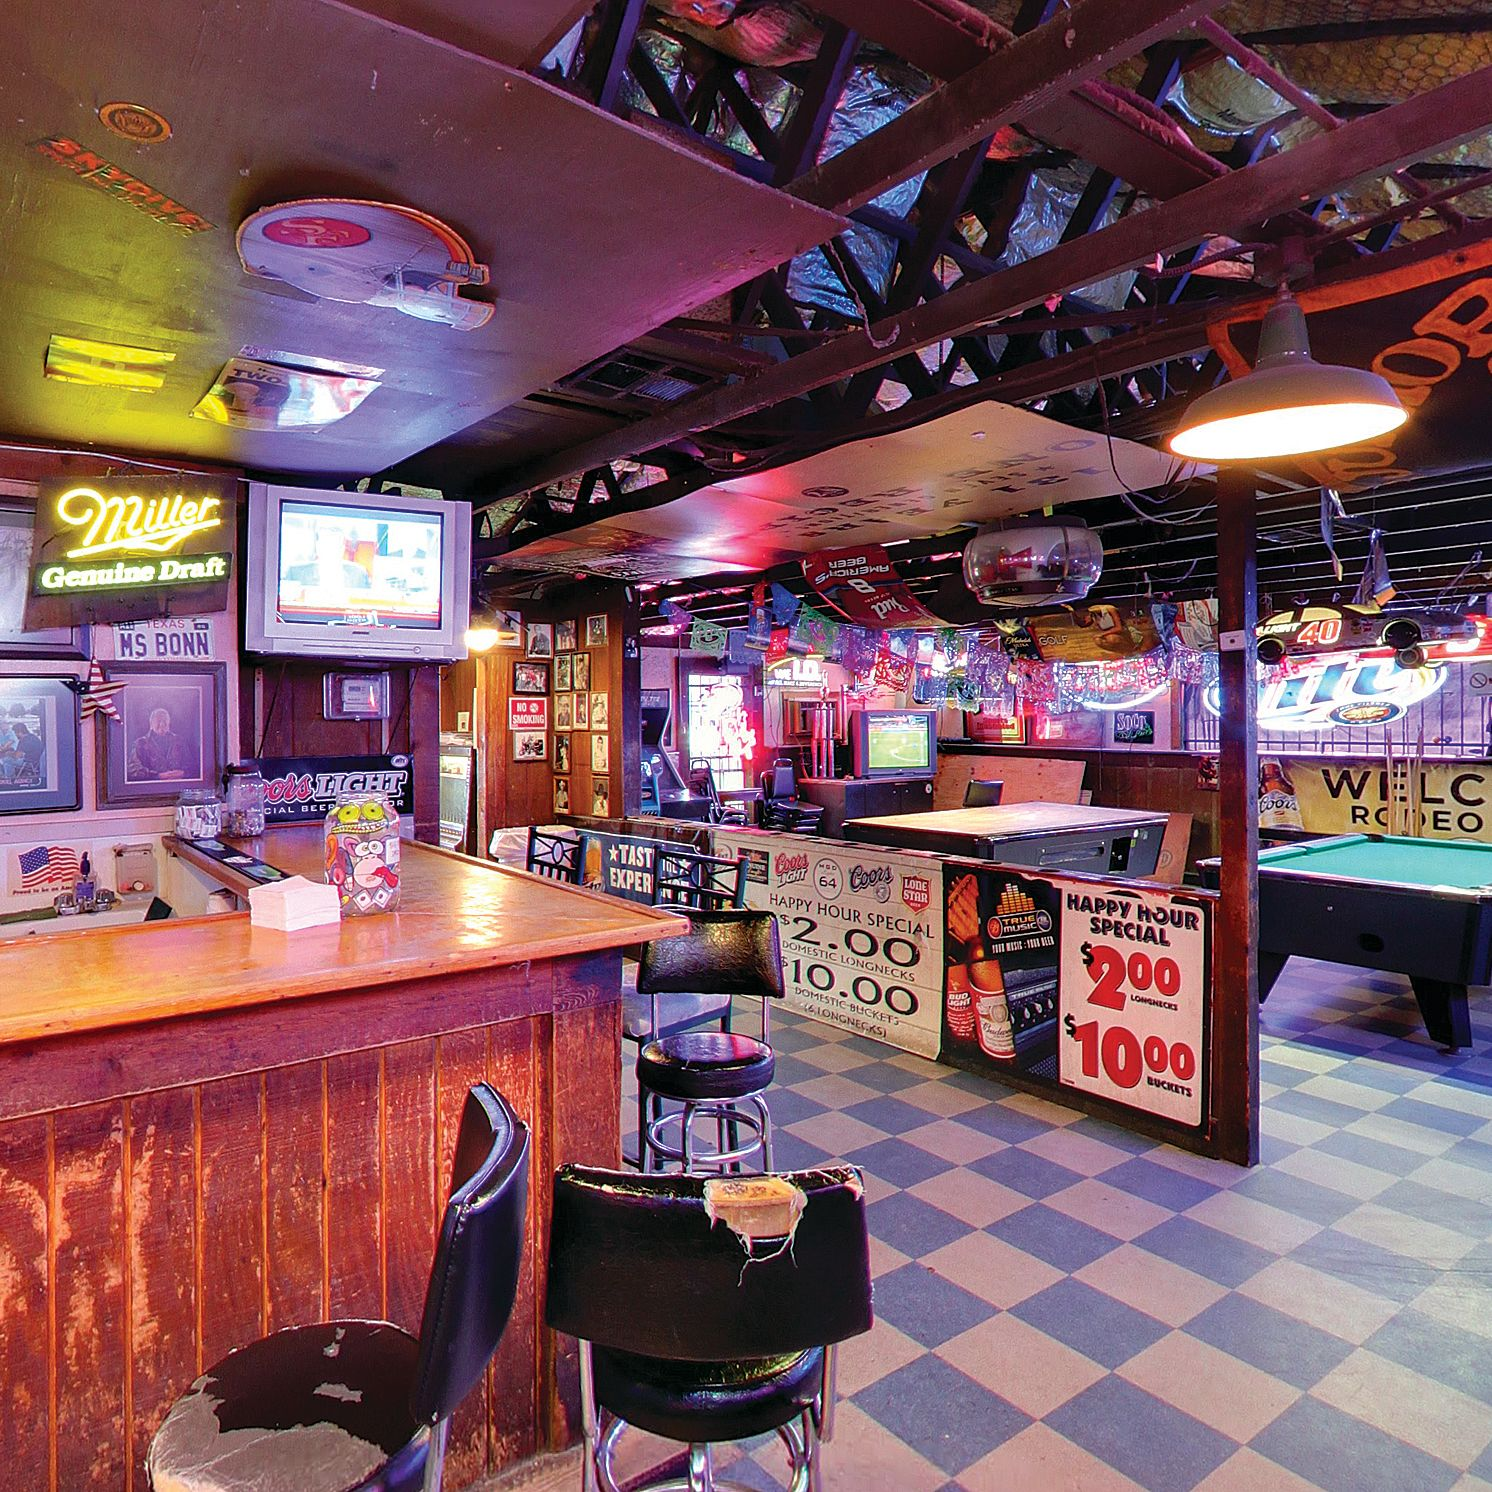 Hou 1116 dive bars kay s lounge g788hv